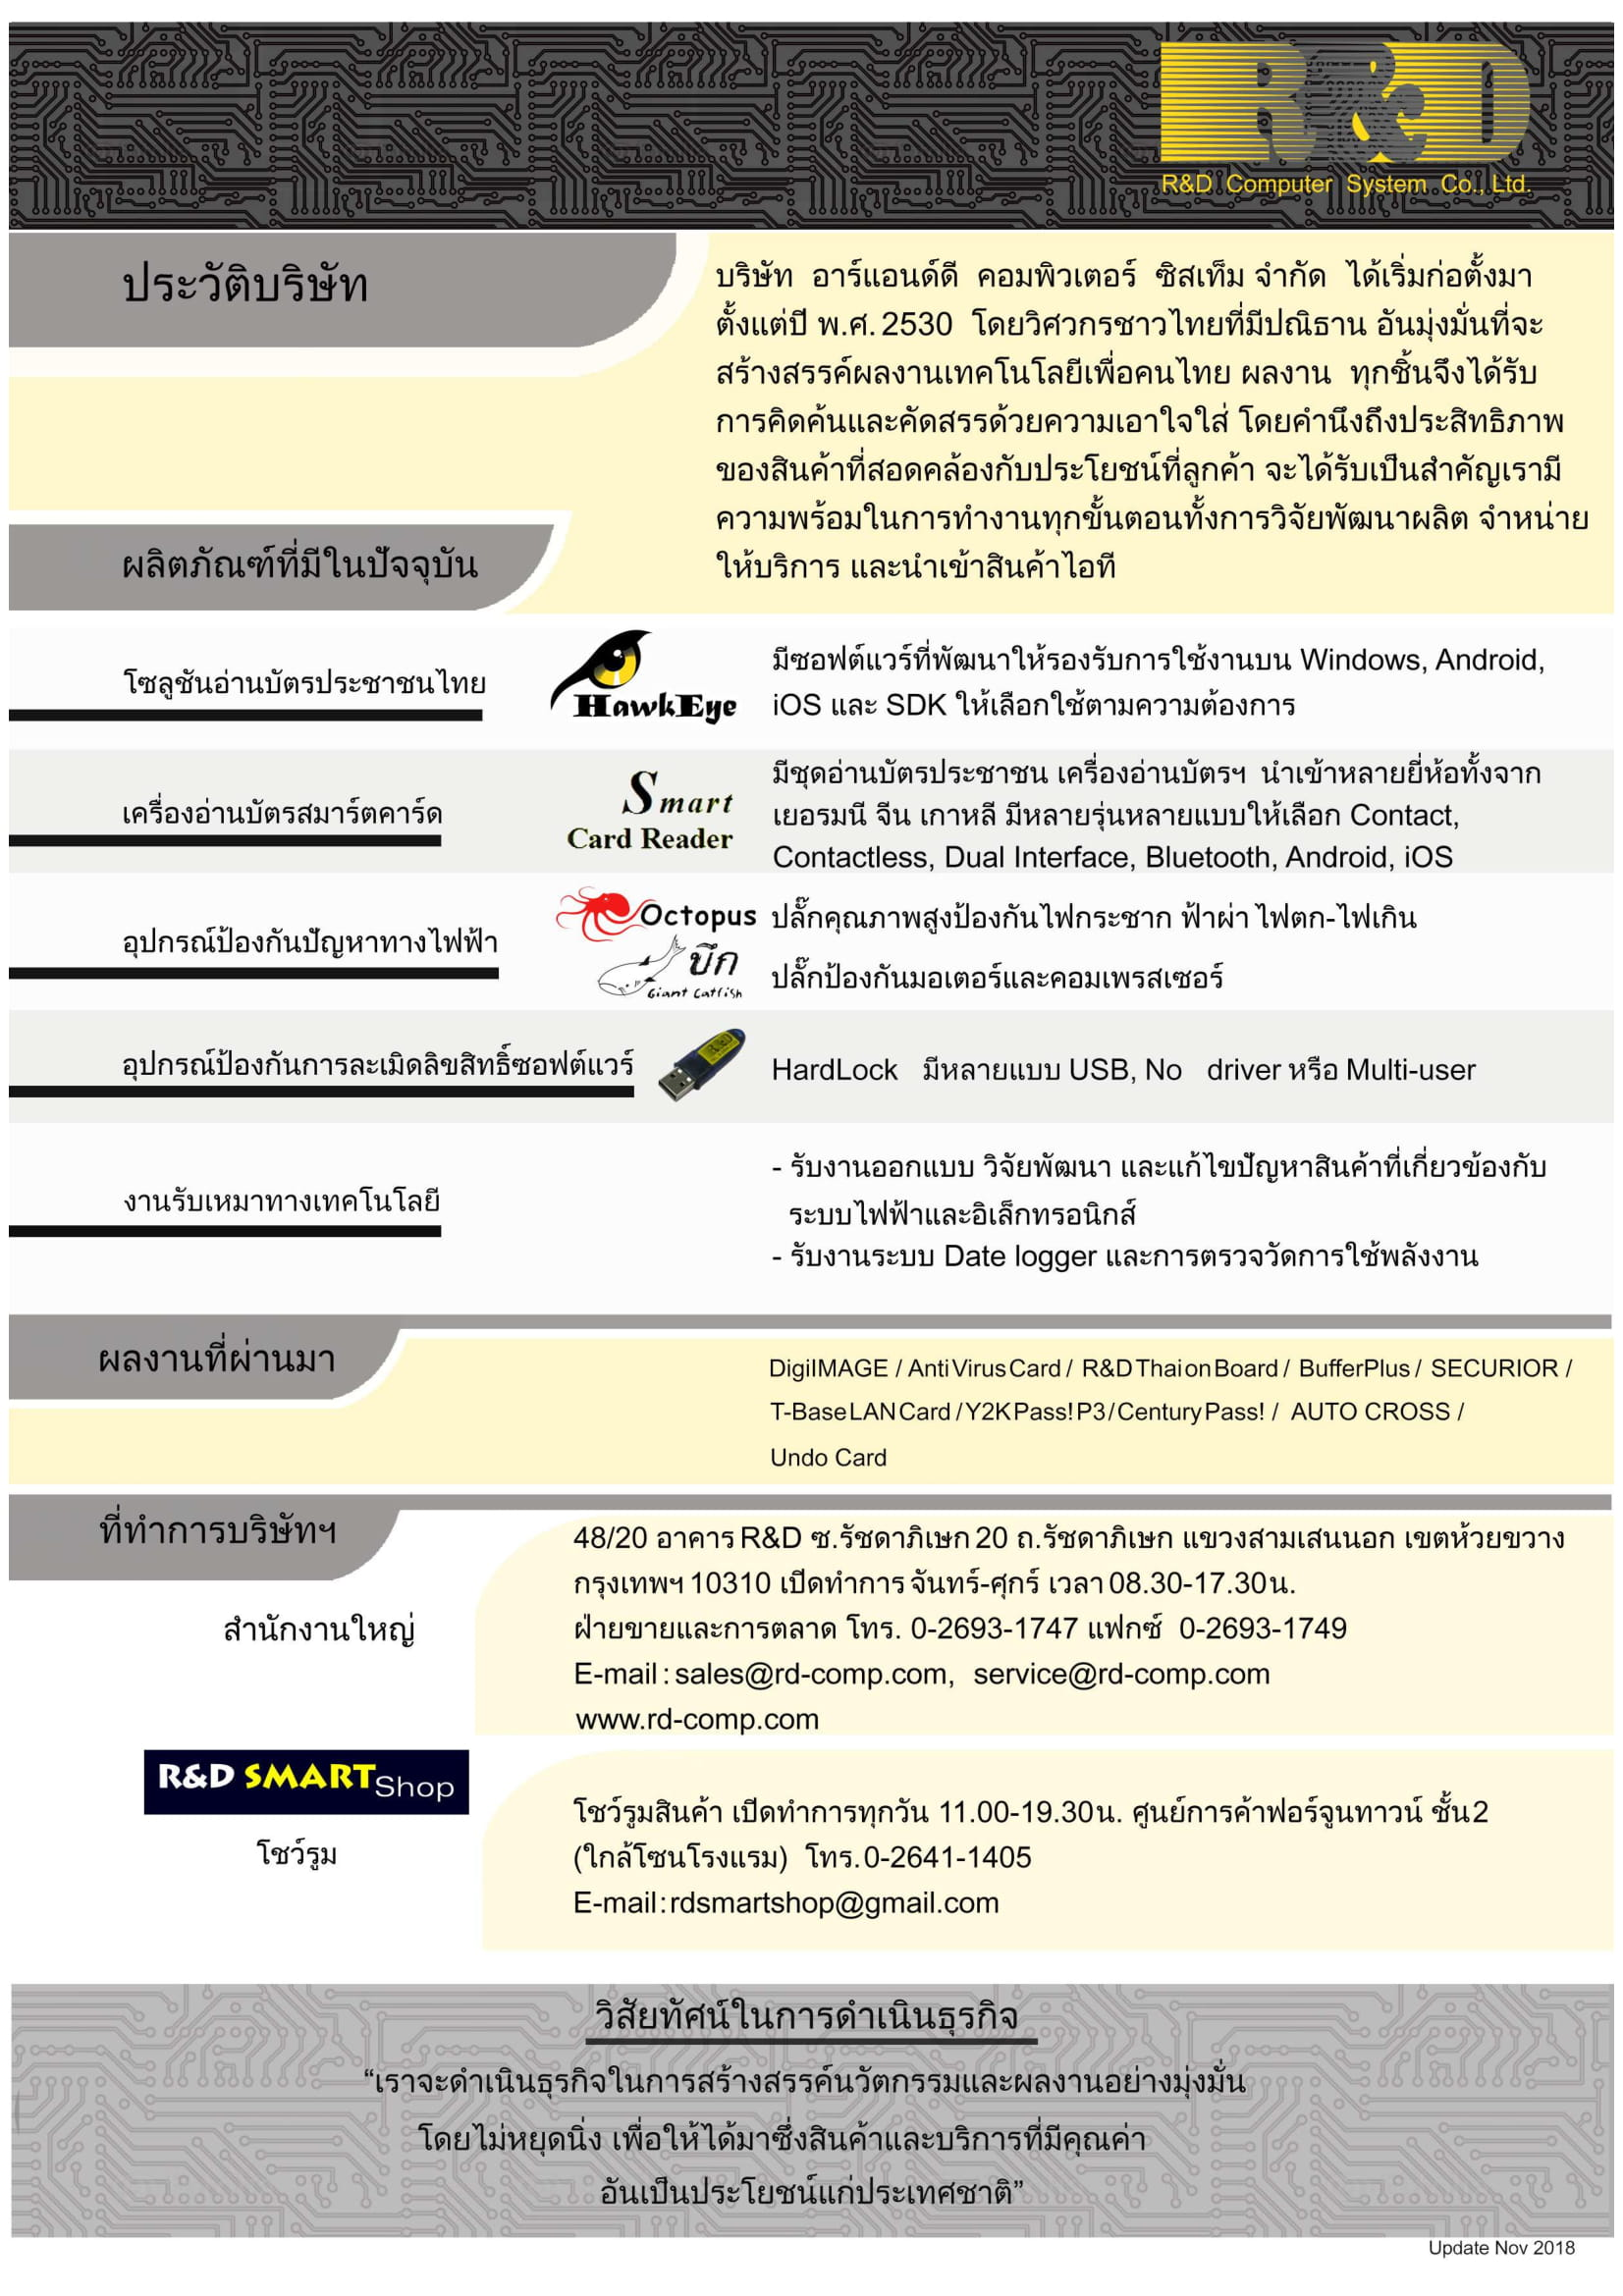 R&D company profile 2018-Thai